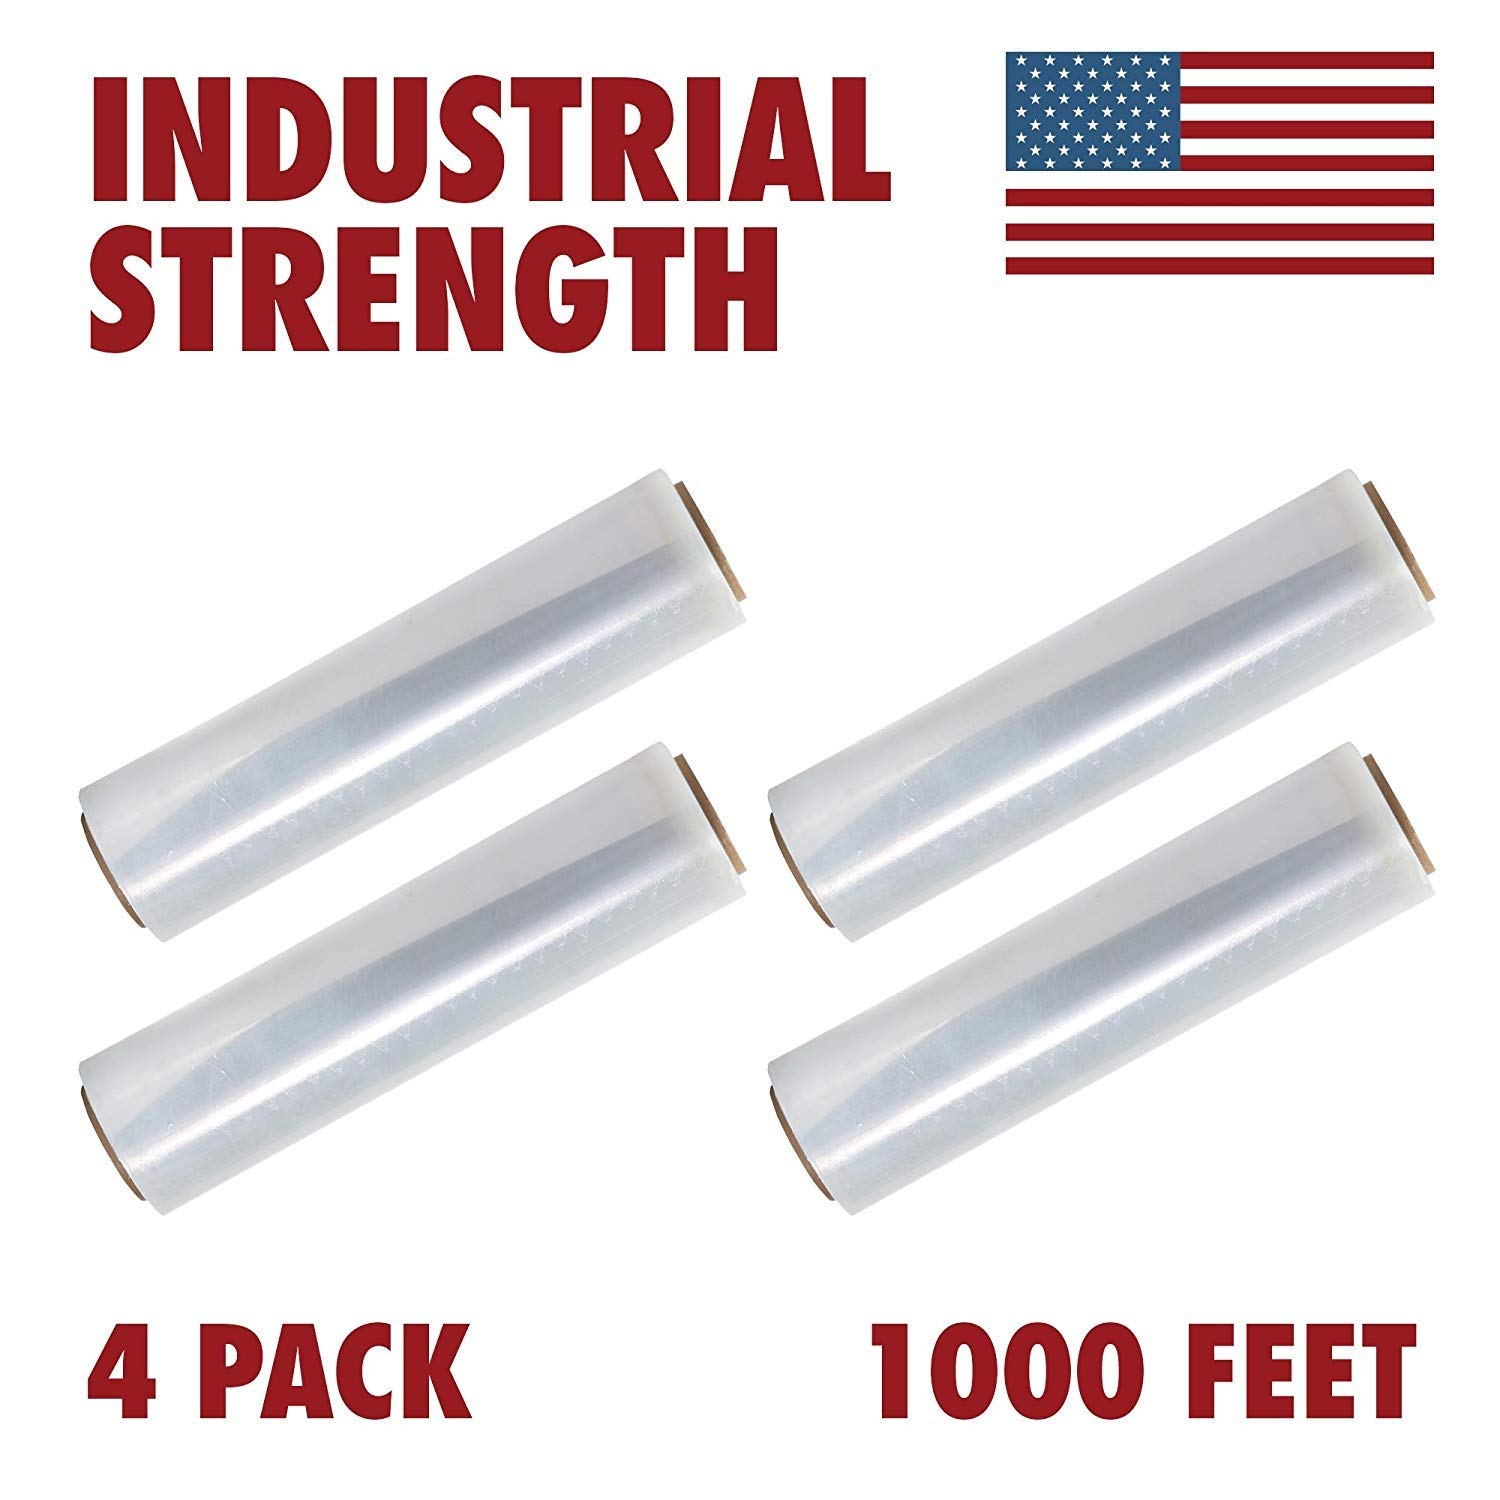 Heavy Duty Stretch Industrial with Handles 4-Pack Thick 80 Gauge for Moving Furniture Pallet Box Wrapping Clear Made in USA Plastic Film Shrink Wrap 20 Inches X 1000 Feet Roll